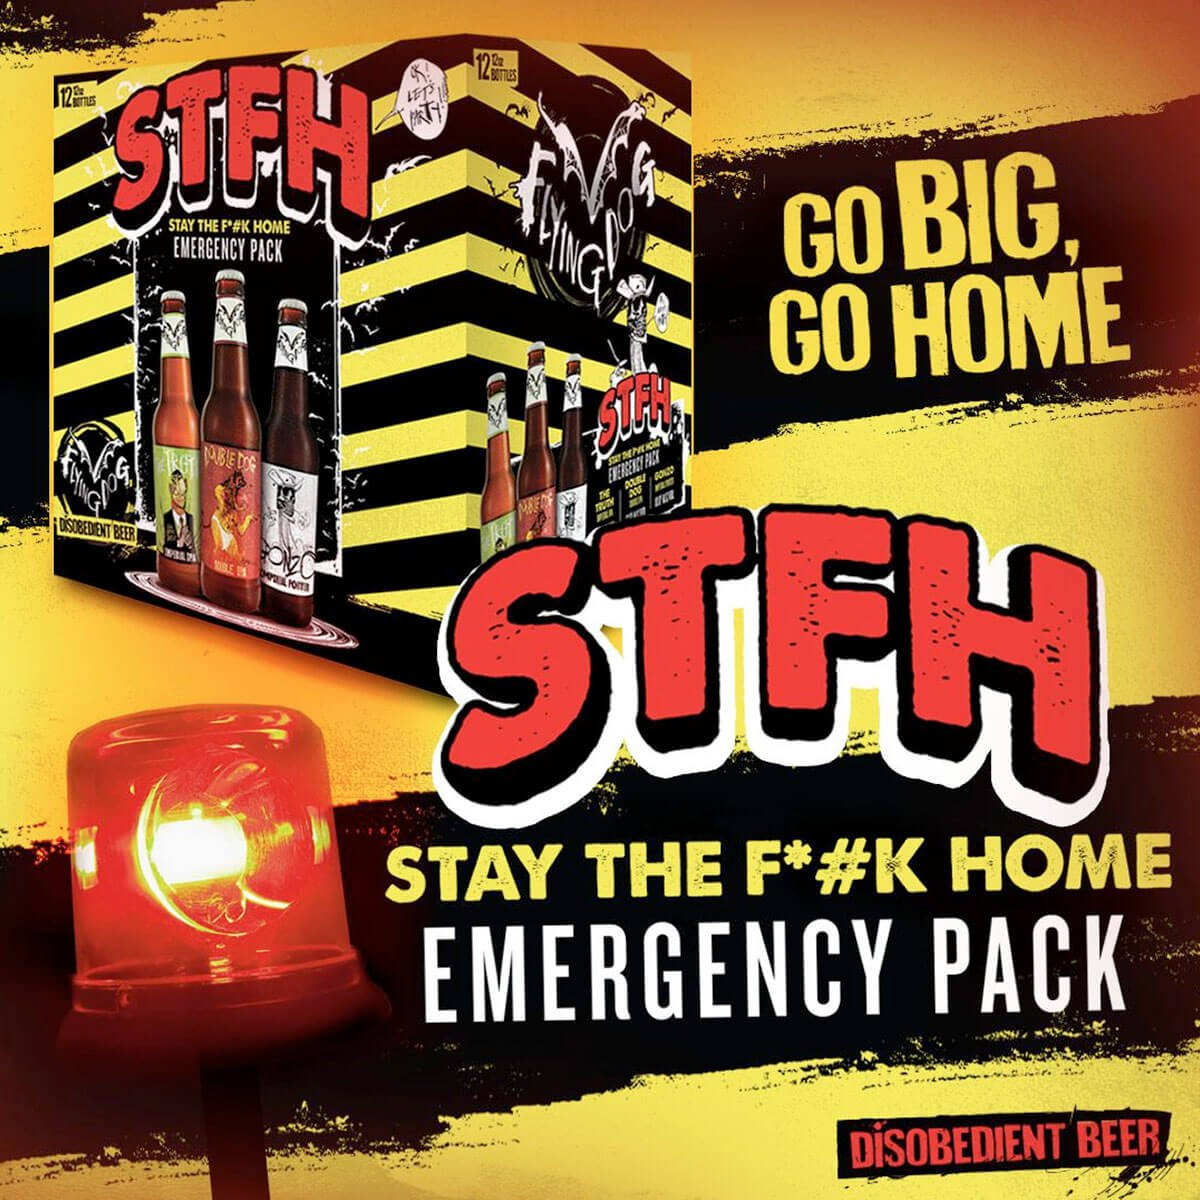 The STFH Emergency Pack features three of Flying Dog's strongest brews: Double Dog Double IPA, Gonzo Imperial Porter, and The Truth Imperial IPA